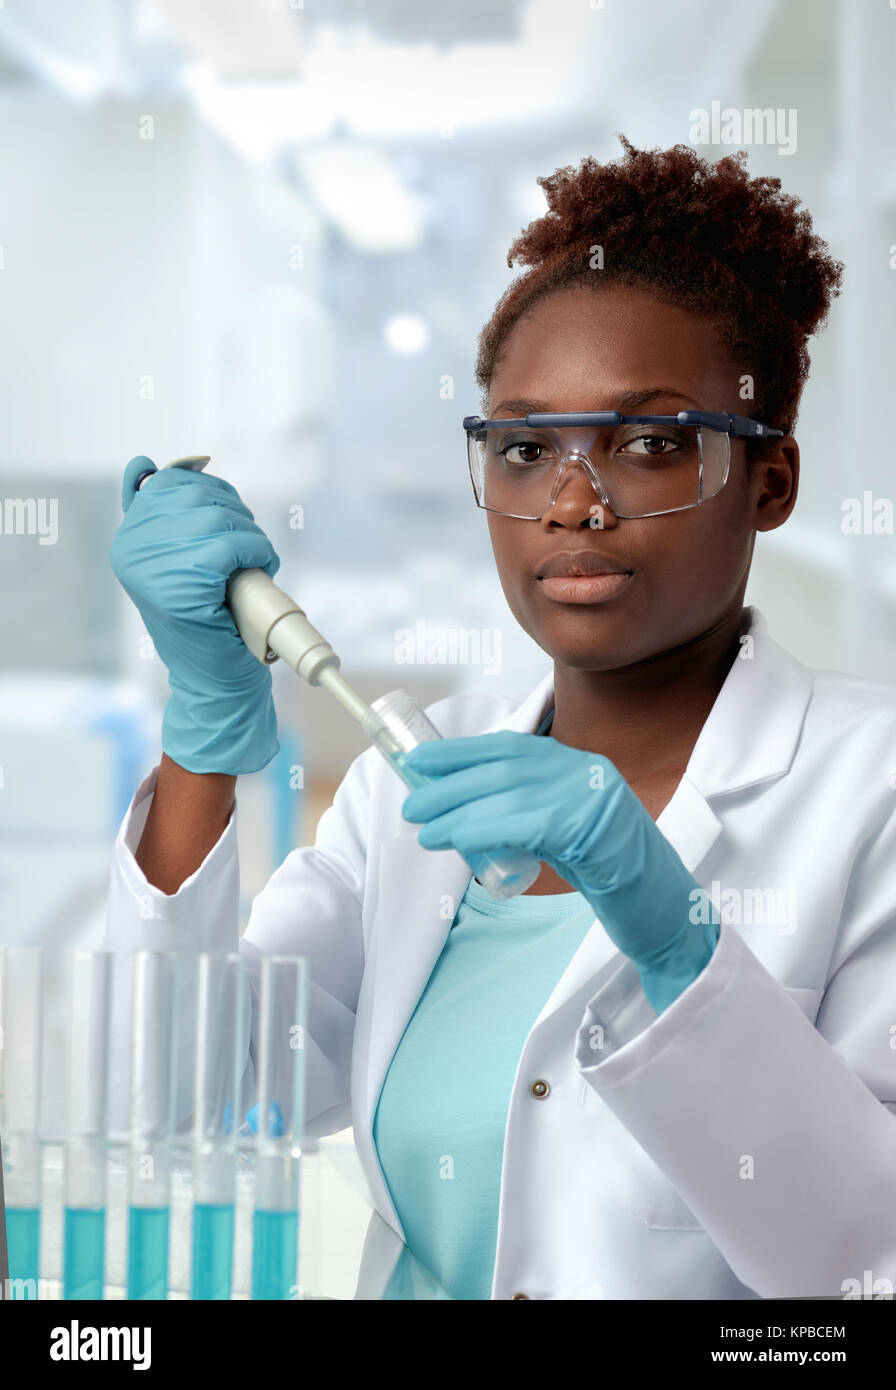 African-american scientist or graduate student in lab coat and protective wear works in modern laboratory - Stock Image